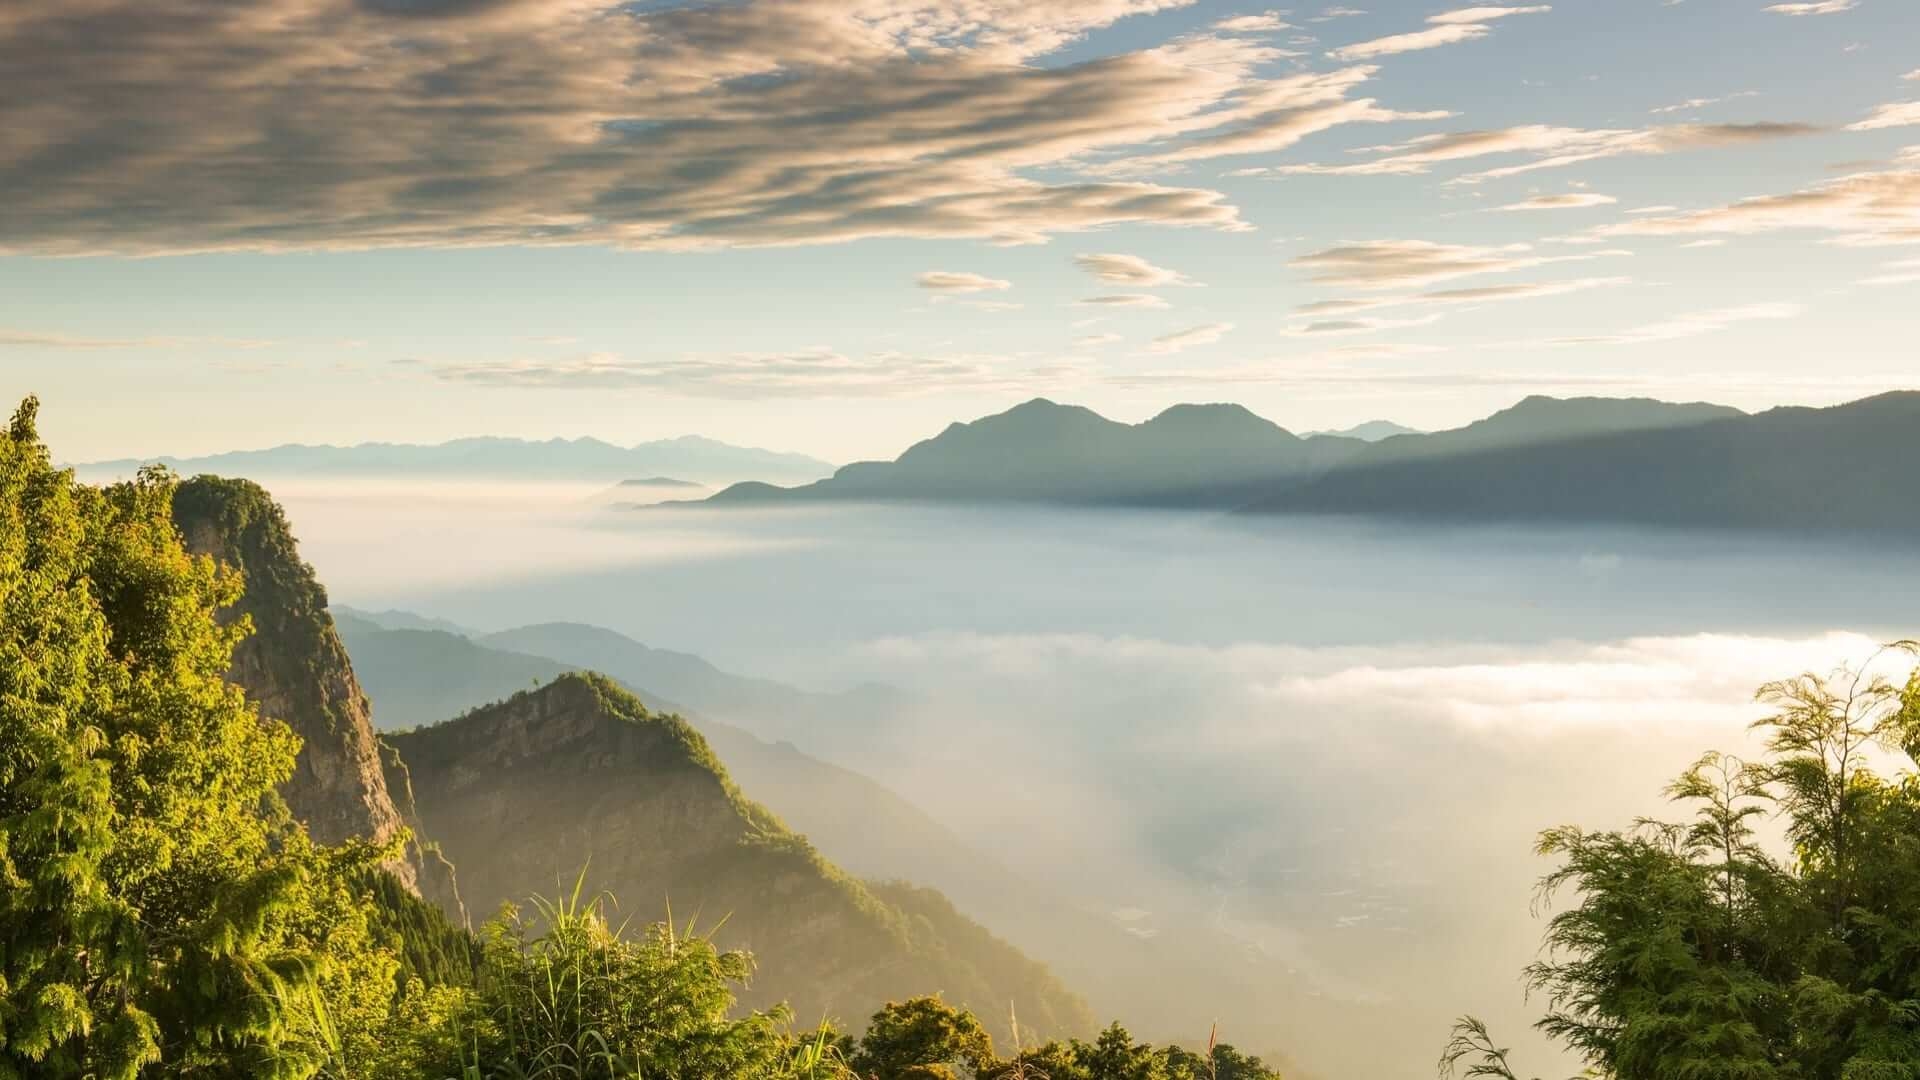 Mountains covered in mist during sunrise in Taiwan.